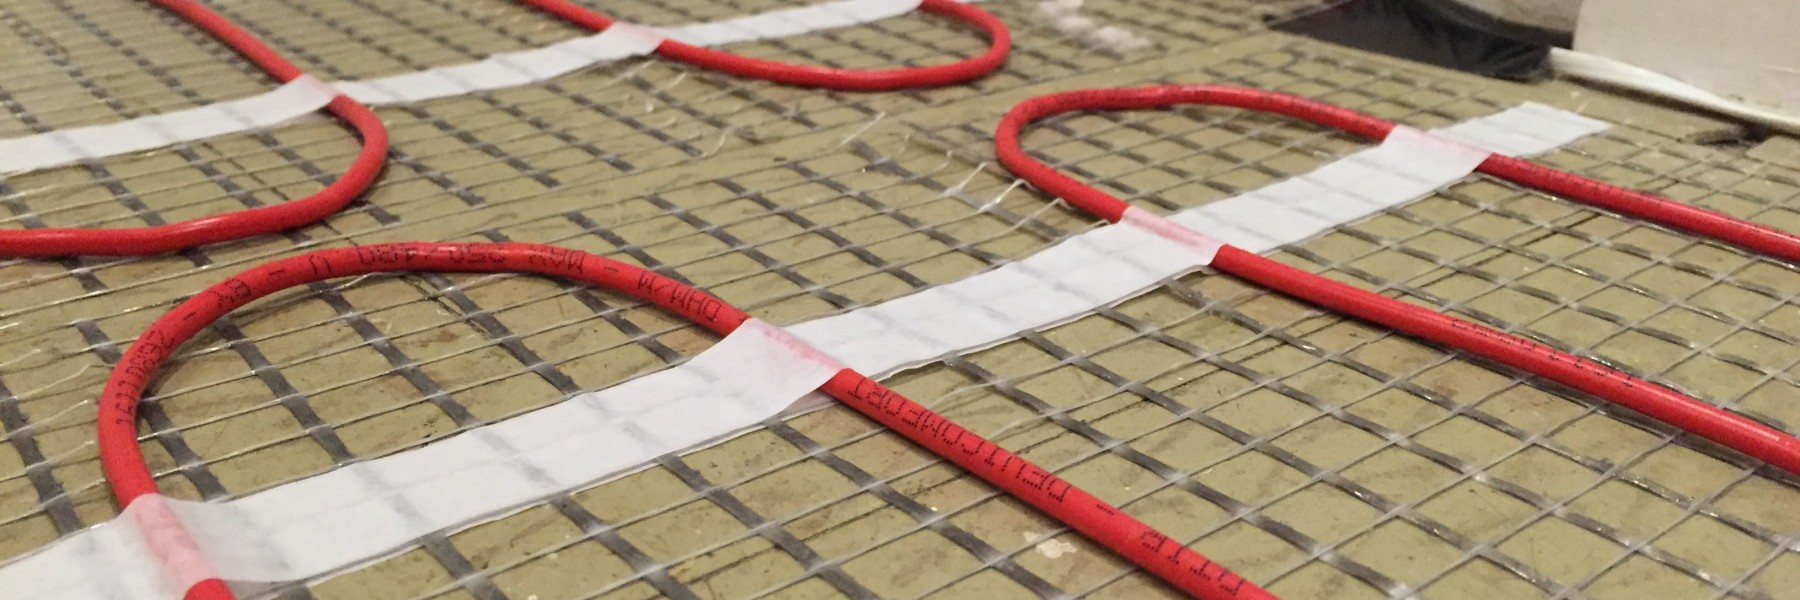 Electric, Elctric underfloor heating, devimat, deviflex, electric mats, electric cables, devicell, gaia, devi